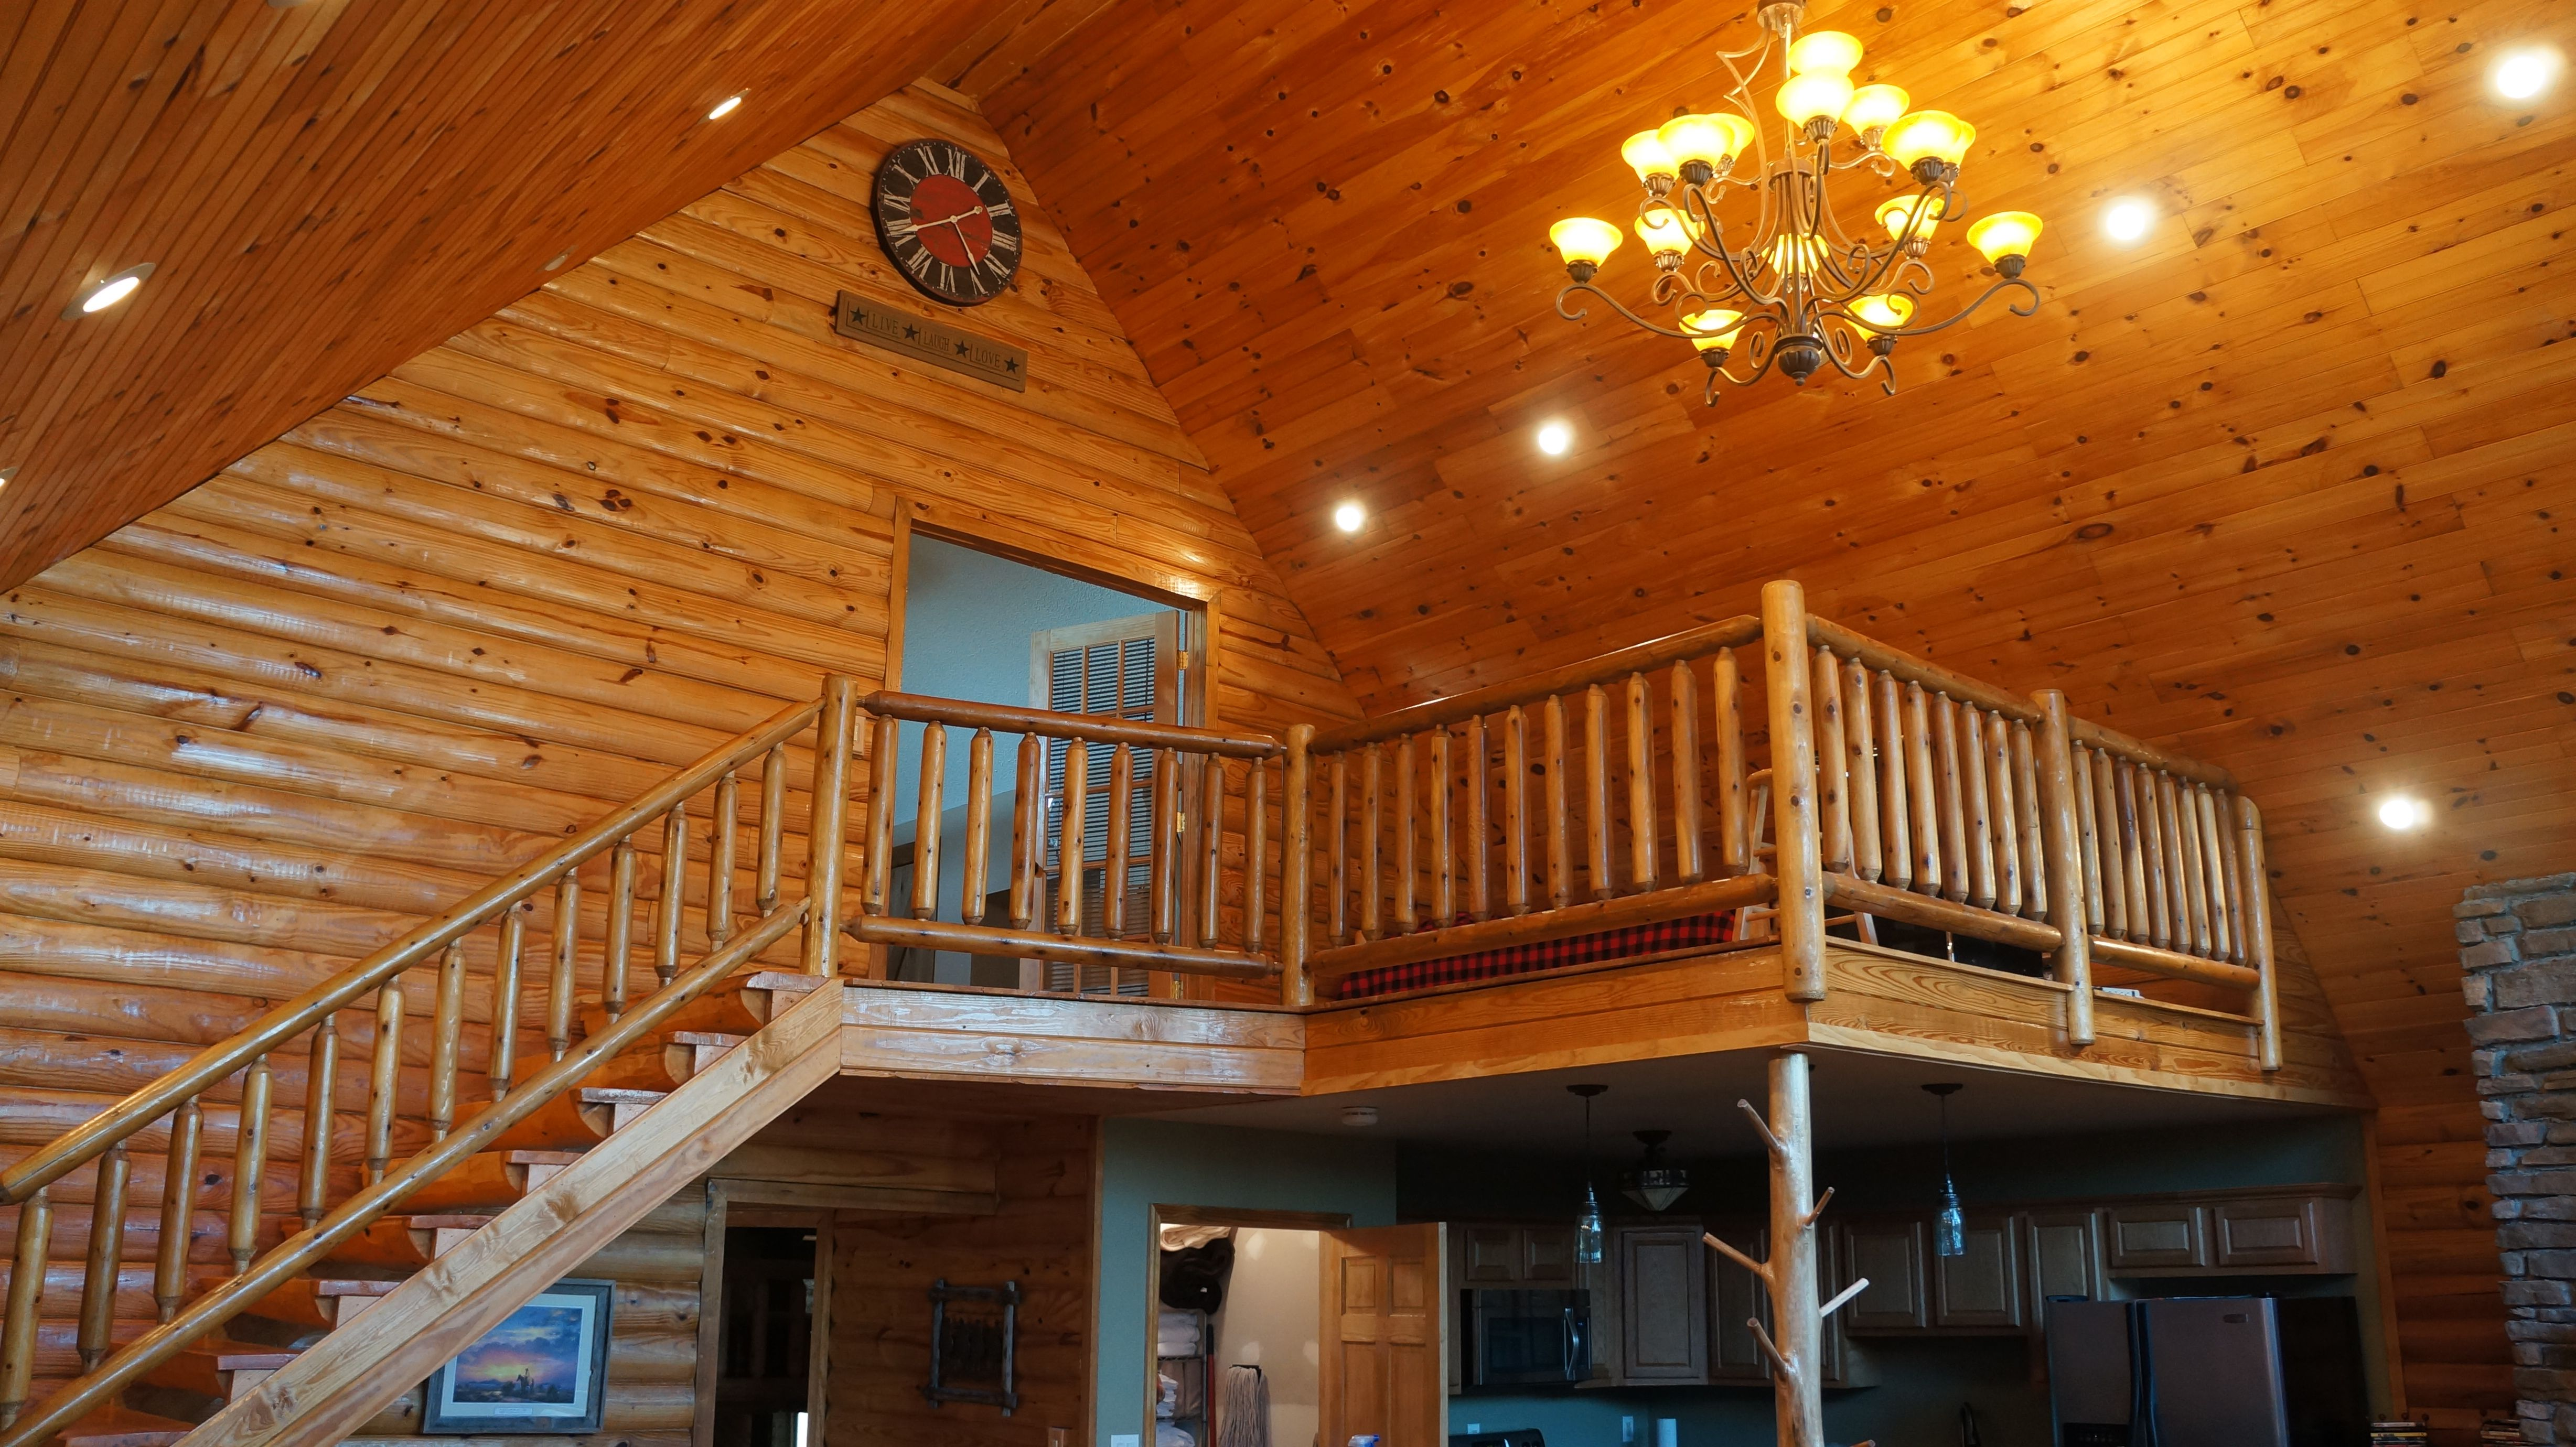 lake of yourself kirby landin cabins water cabin has you to plenty for greeson and come enjoy sports see hollow marina rentals dale